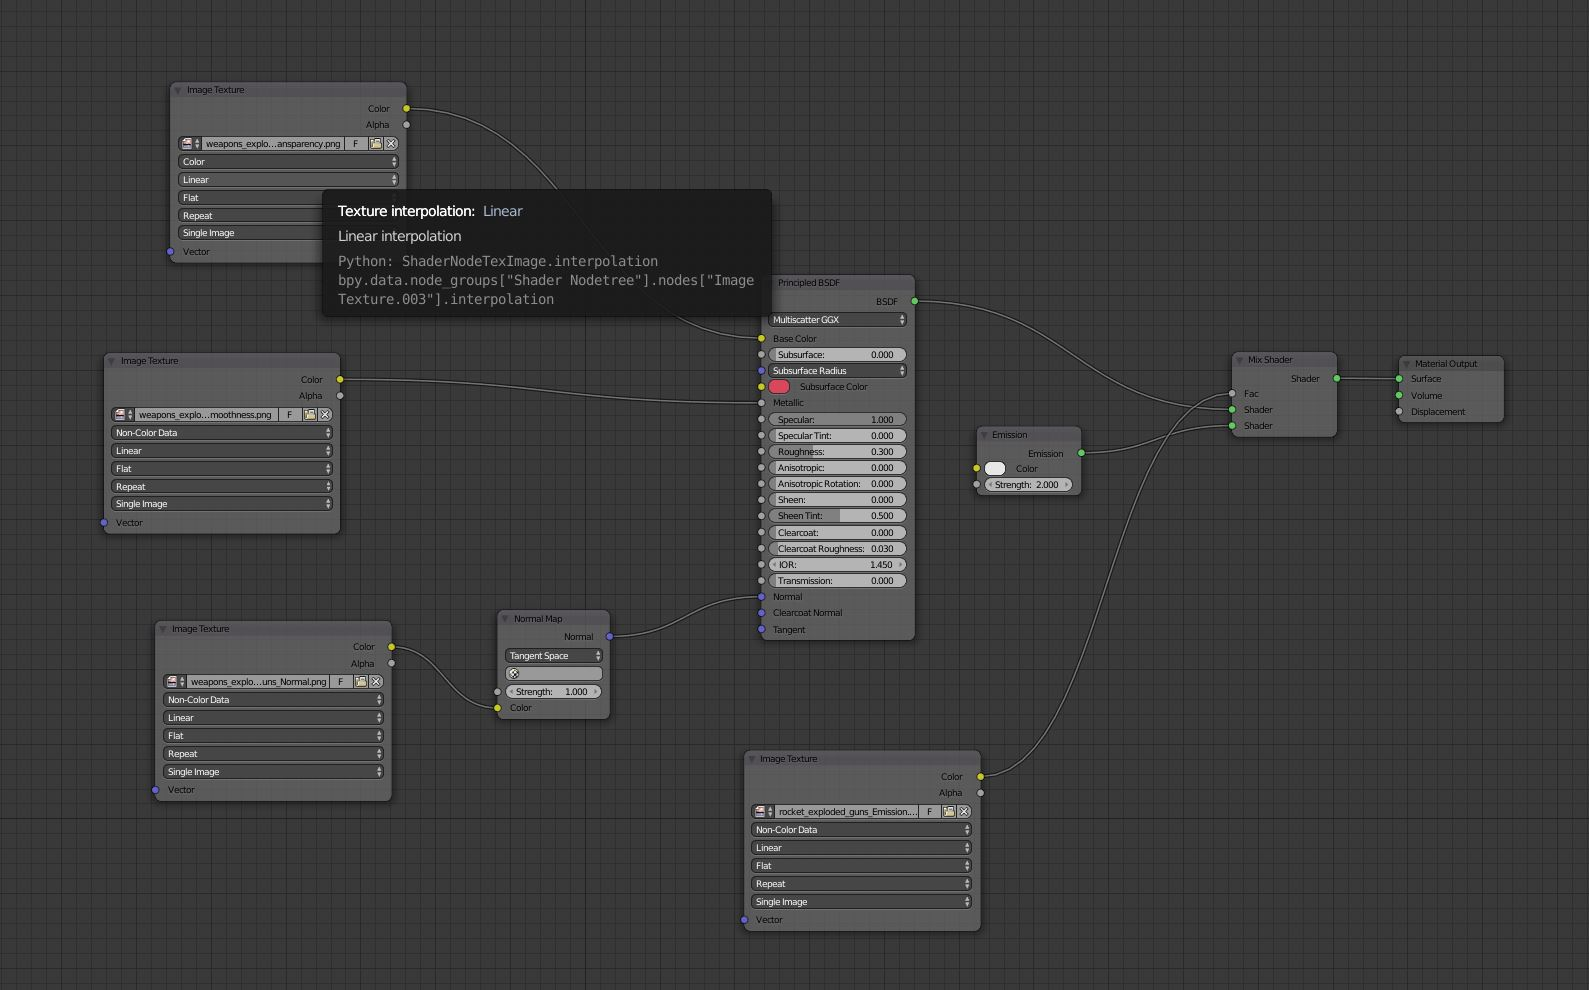 CG Cookie - How to export mesh in FBX format with the textures